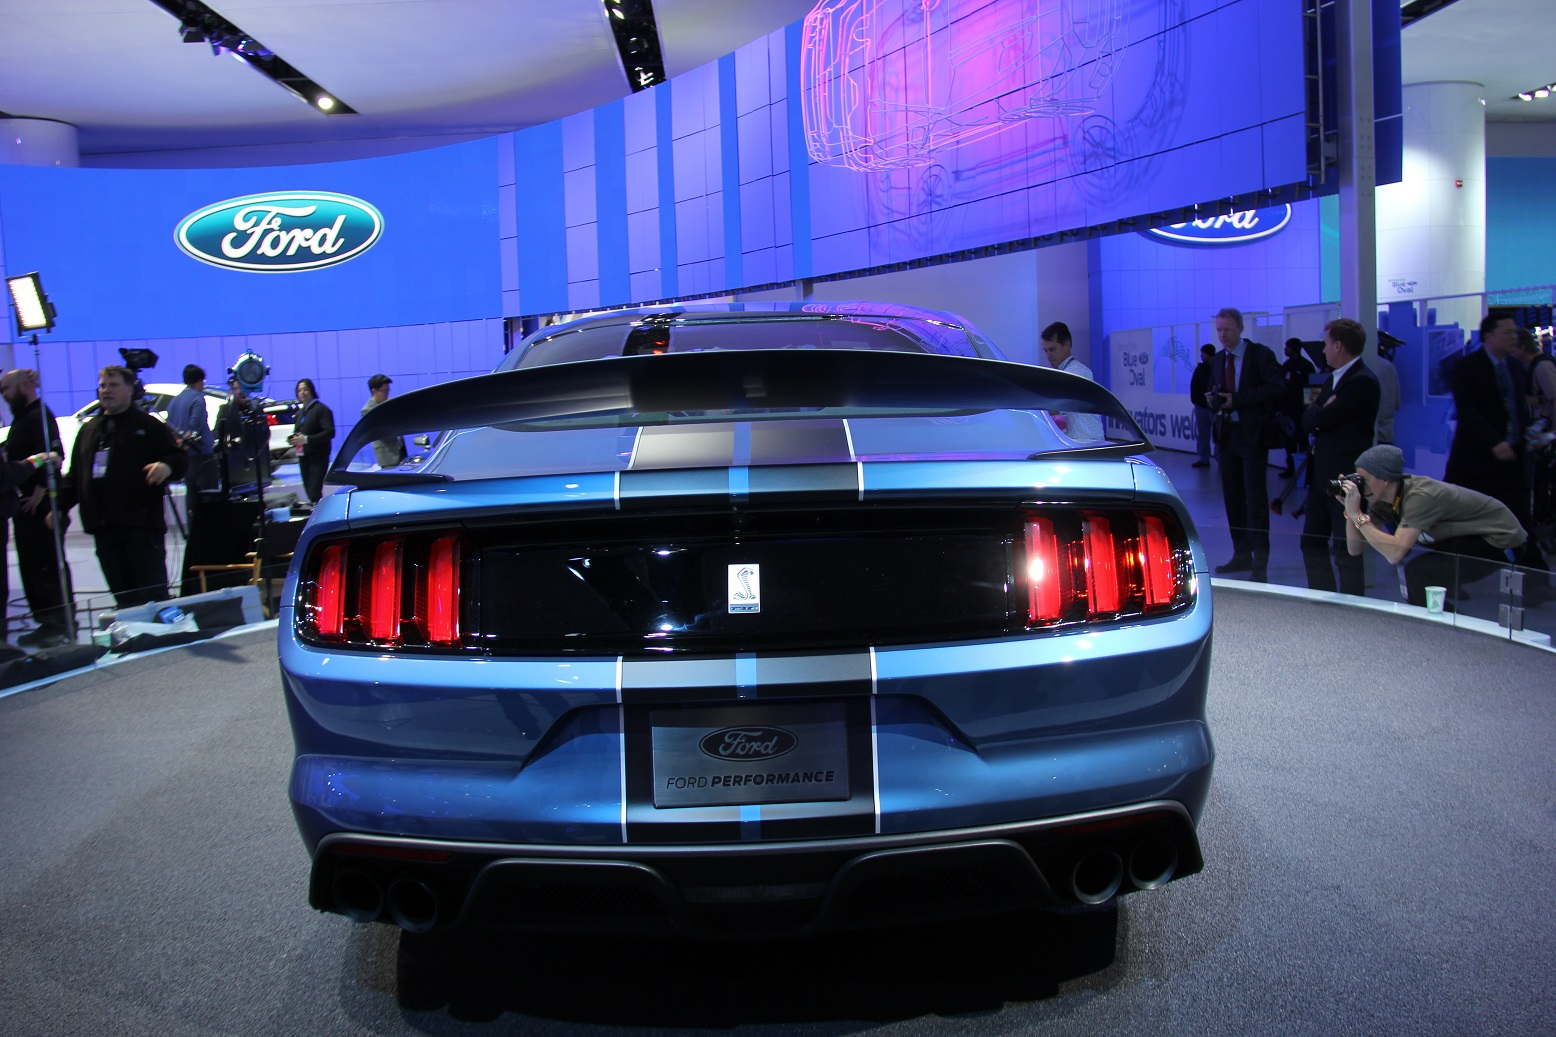 2016 Ford Mustang Shelby Gt350r Rear End Design (Photo 34 of 47)